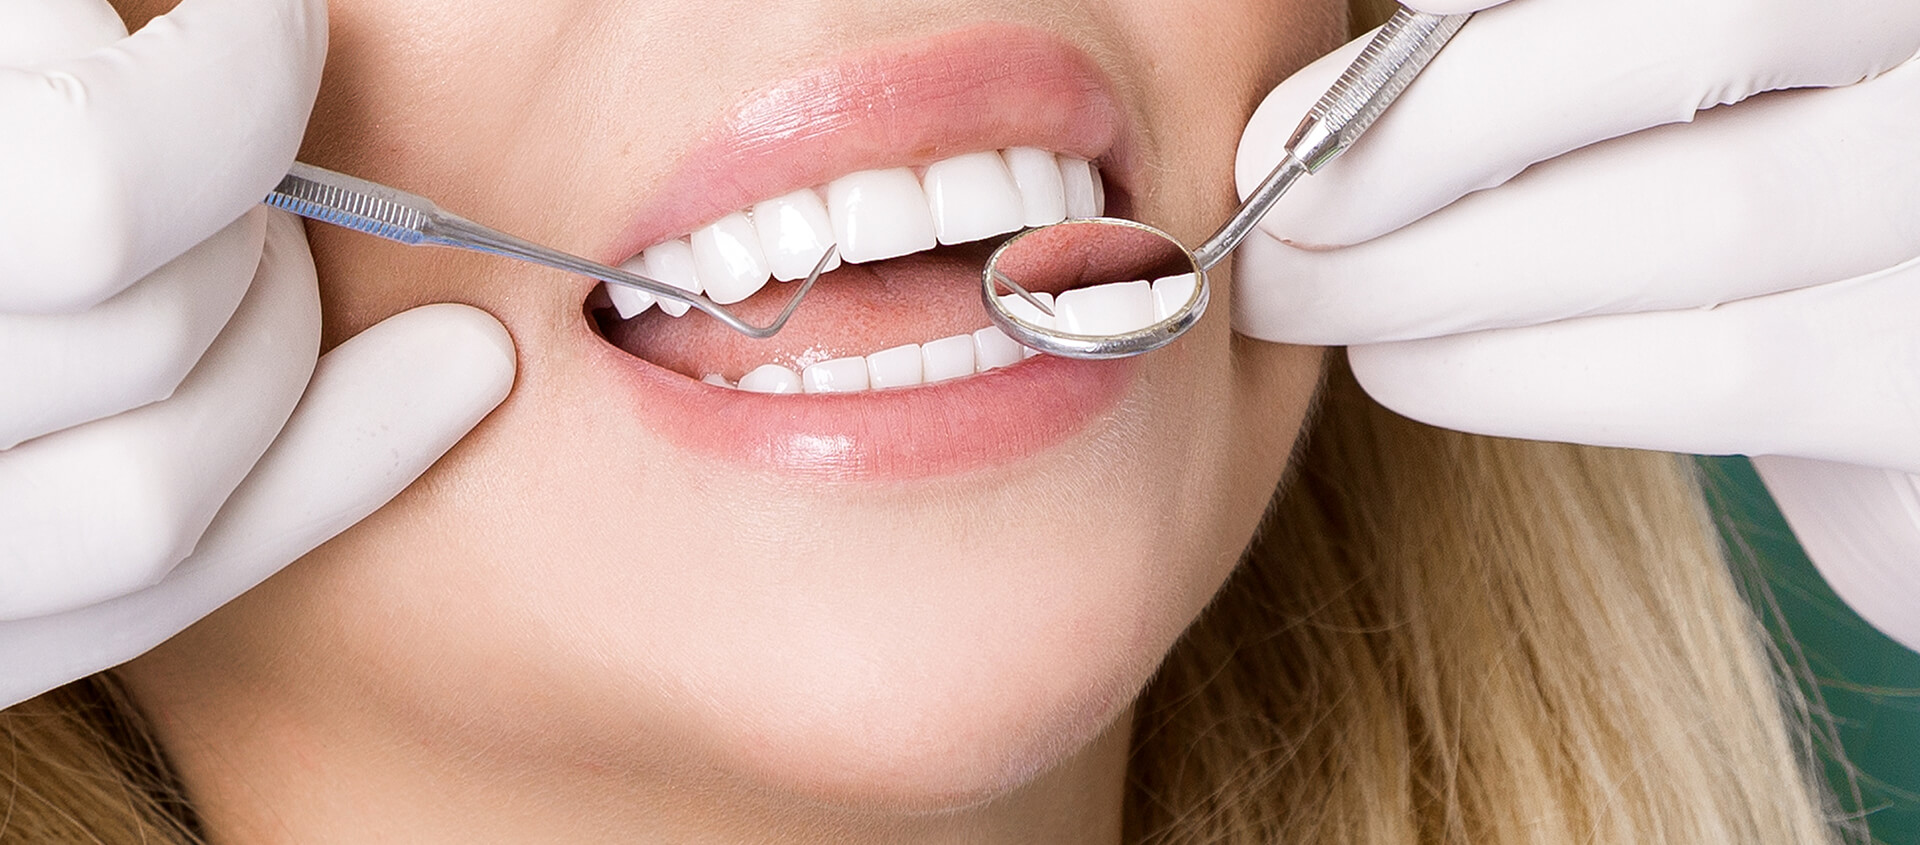 A Cosmetic Dental Office Can Renew Your Confidence at Lawrence Dental Group located in Kingston PA Area